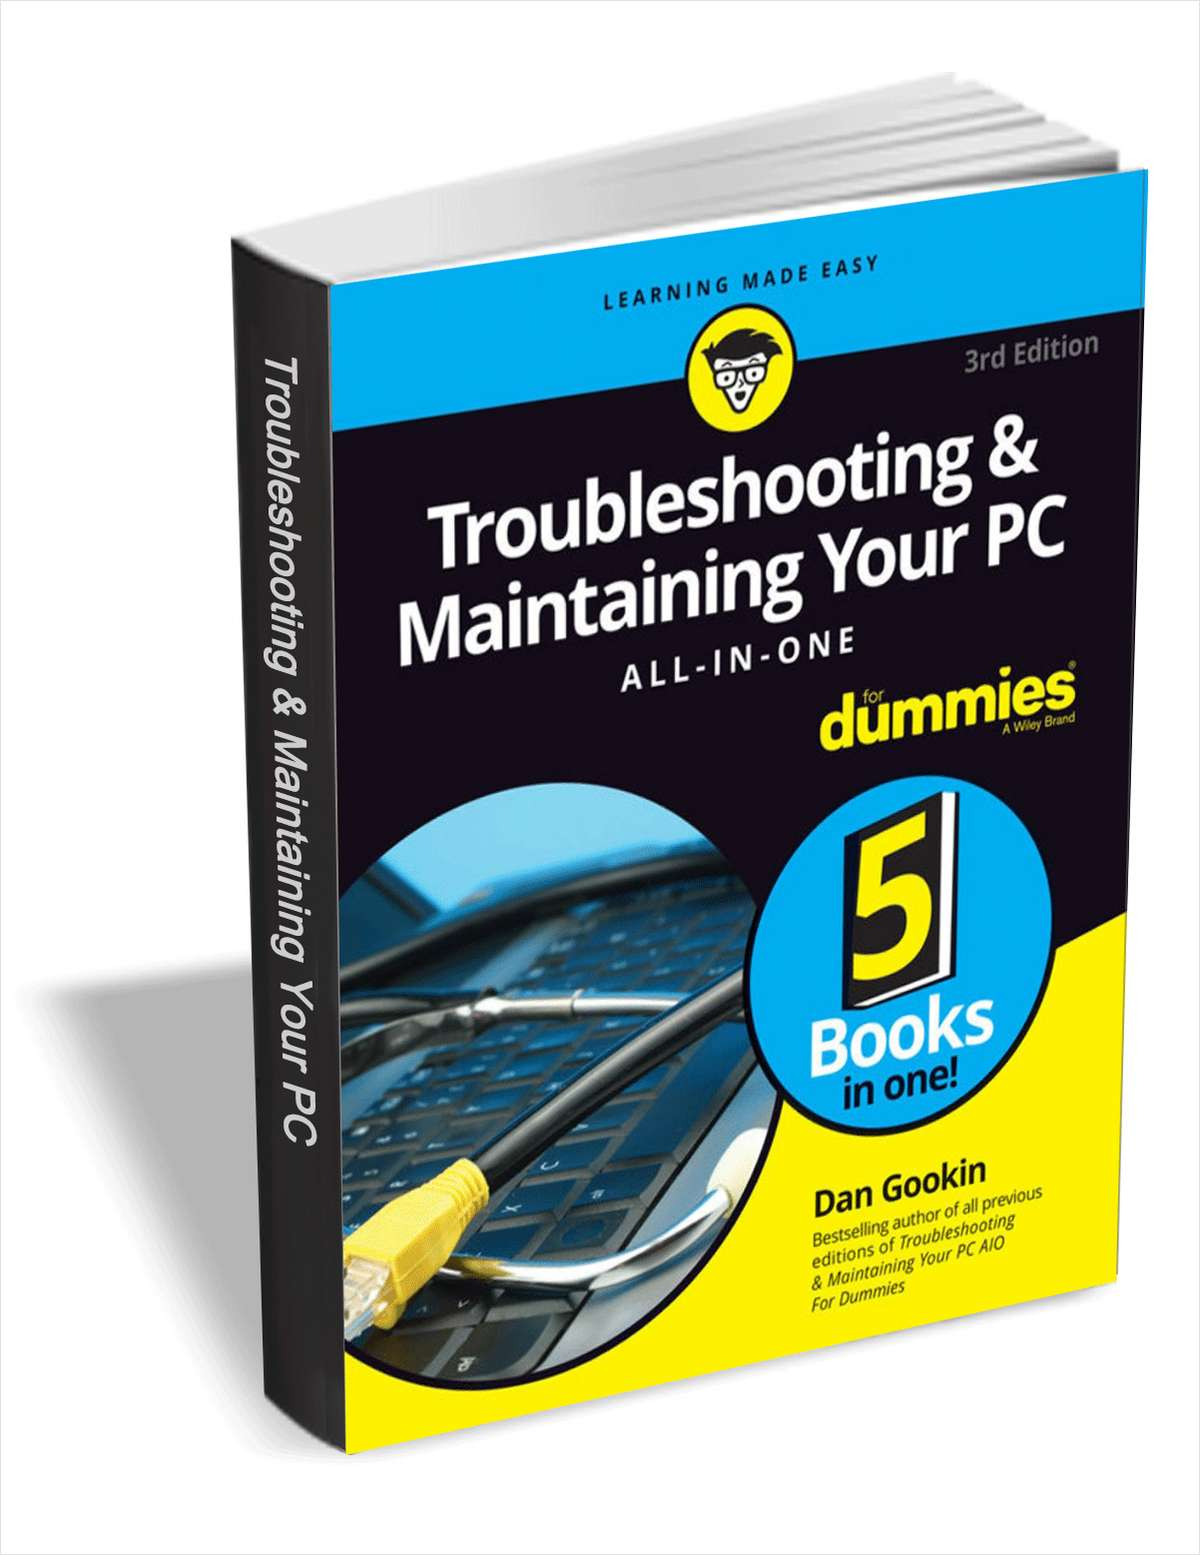 Troubleshooting and Maintaining Your PC All-in-One For Dummies, 3rd Edition ($16 Value) FREE For a Limited Time